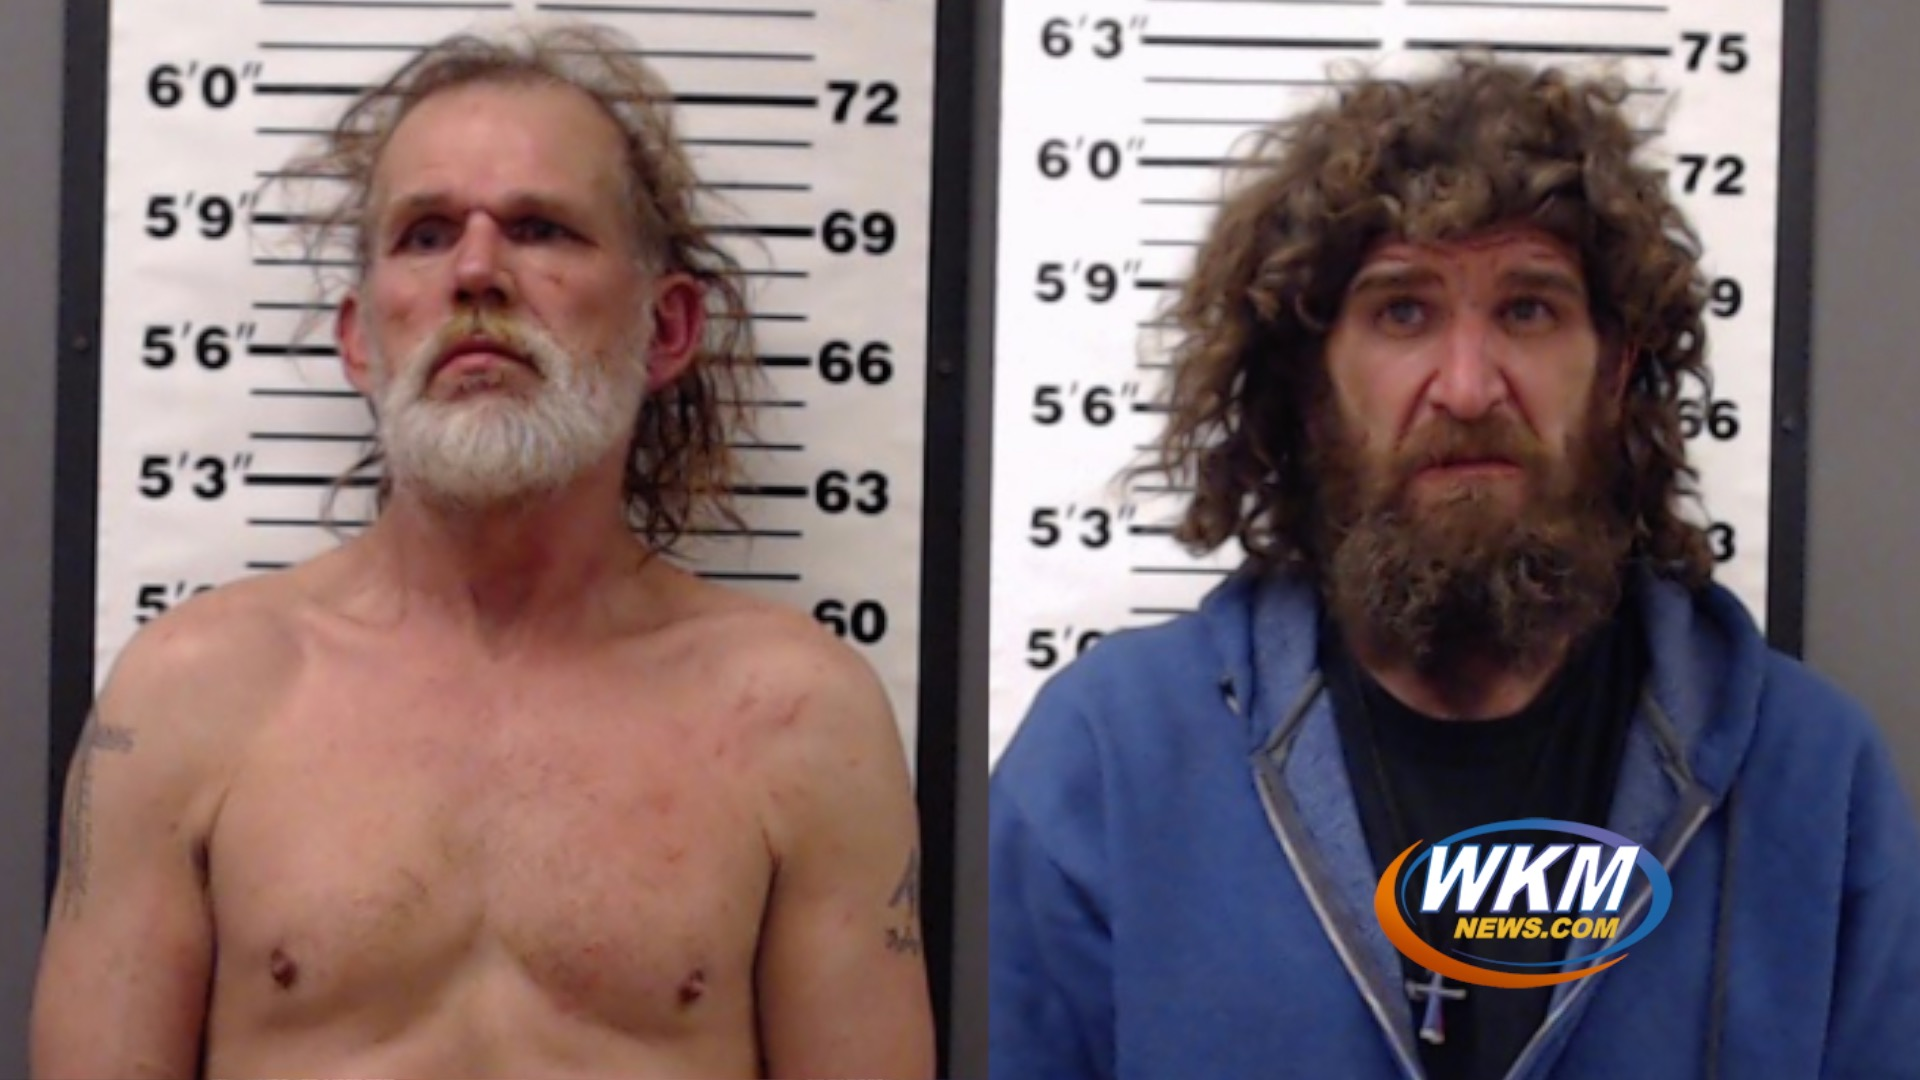 Two Milton Residents Arrested on Burglary Charges